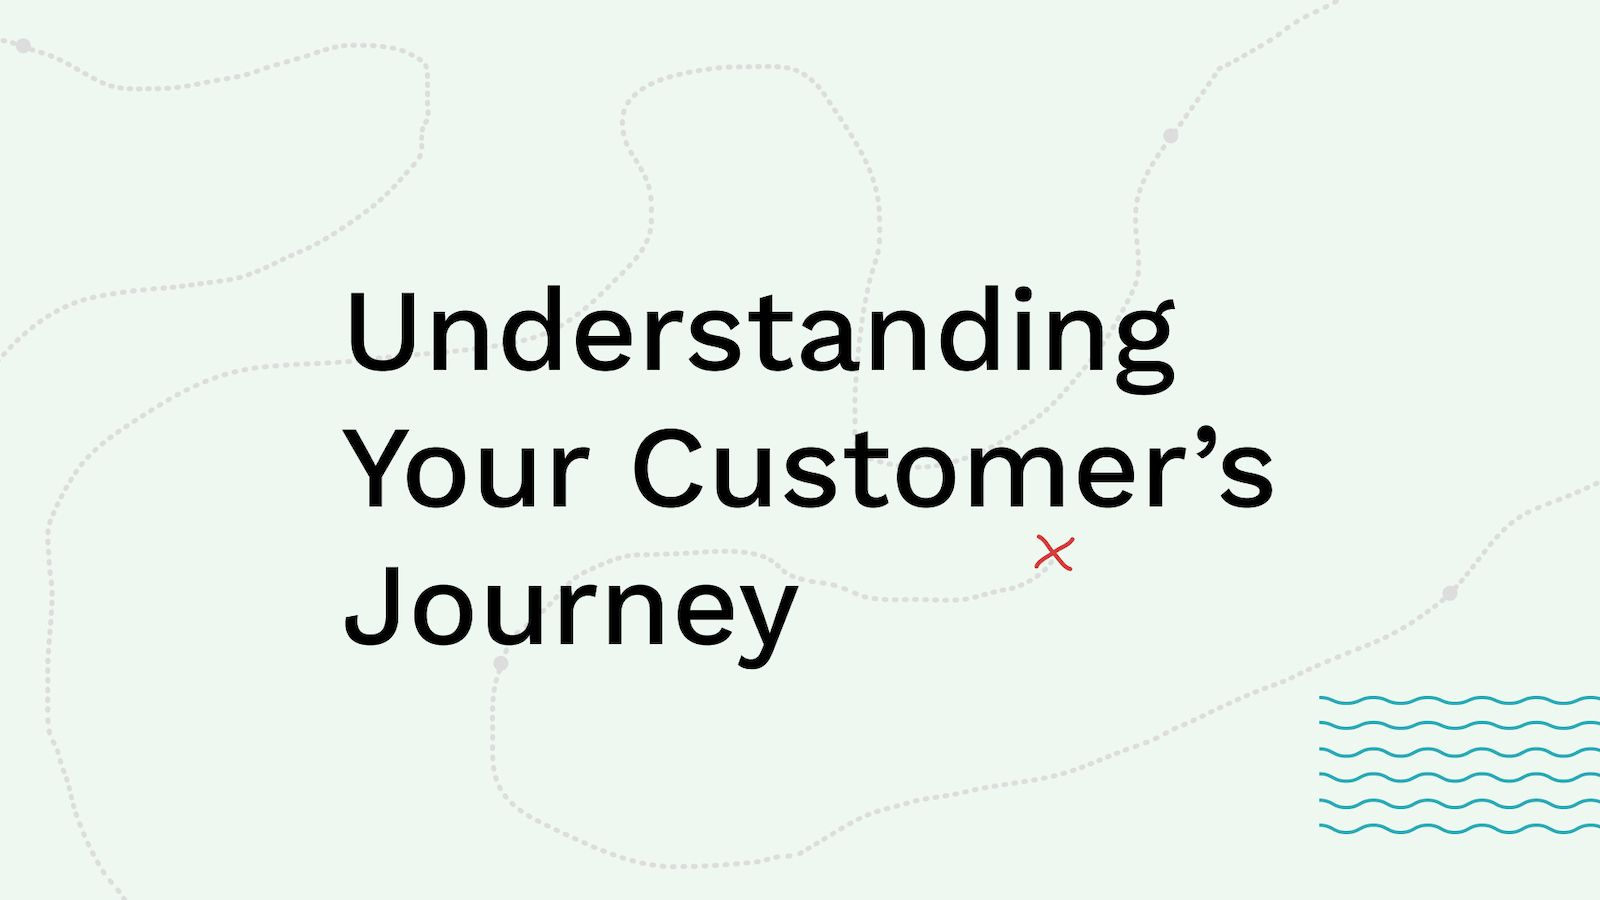 understanding your customer's journey promotional graphic